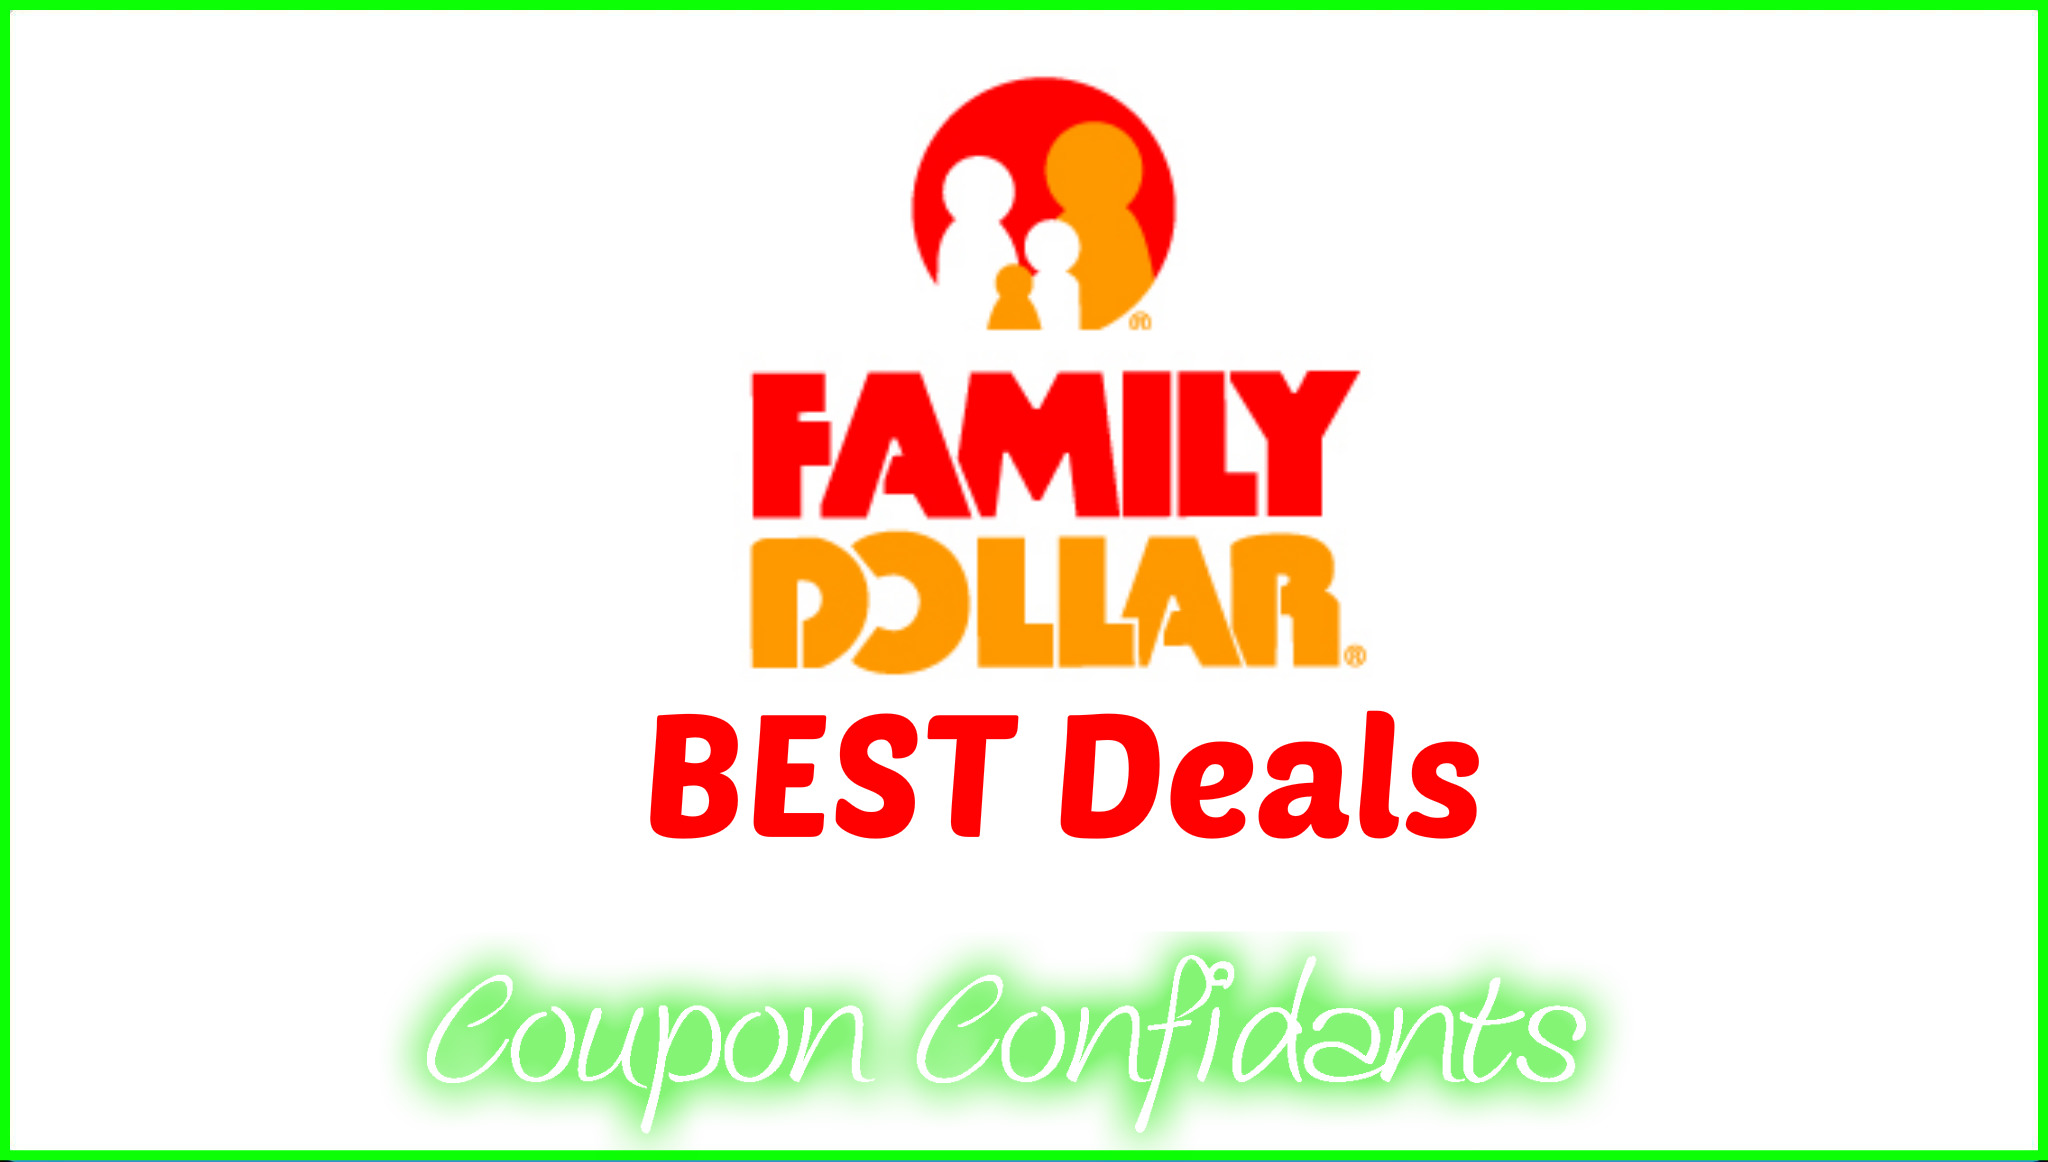 Great deals coupons